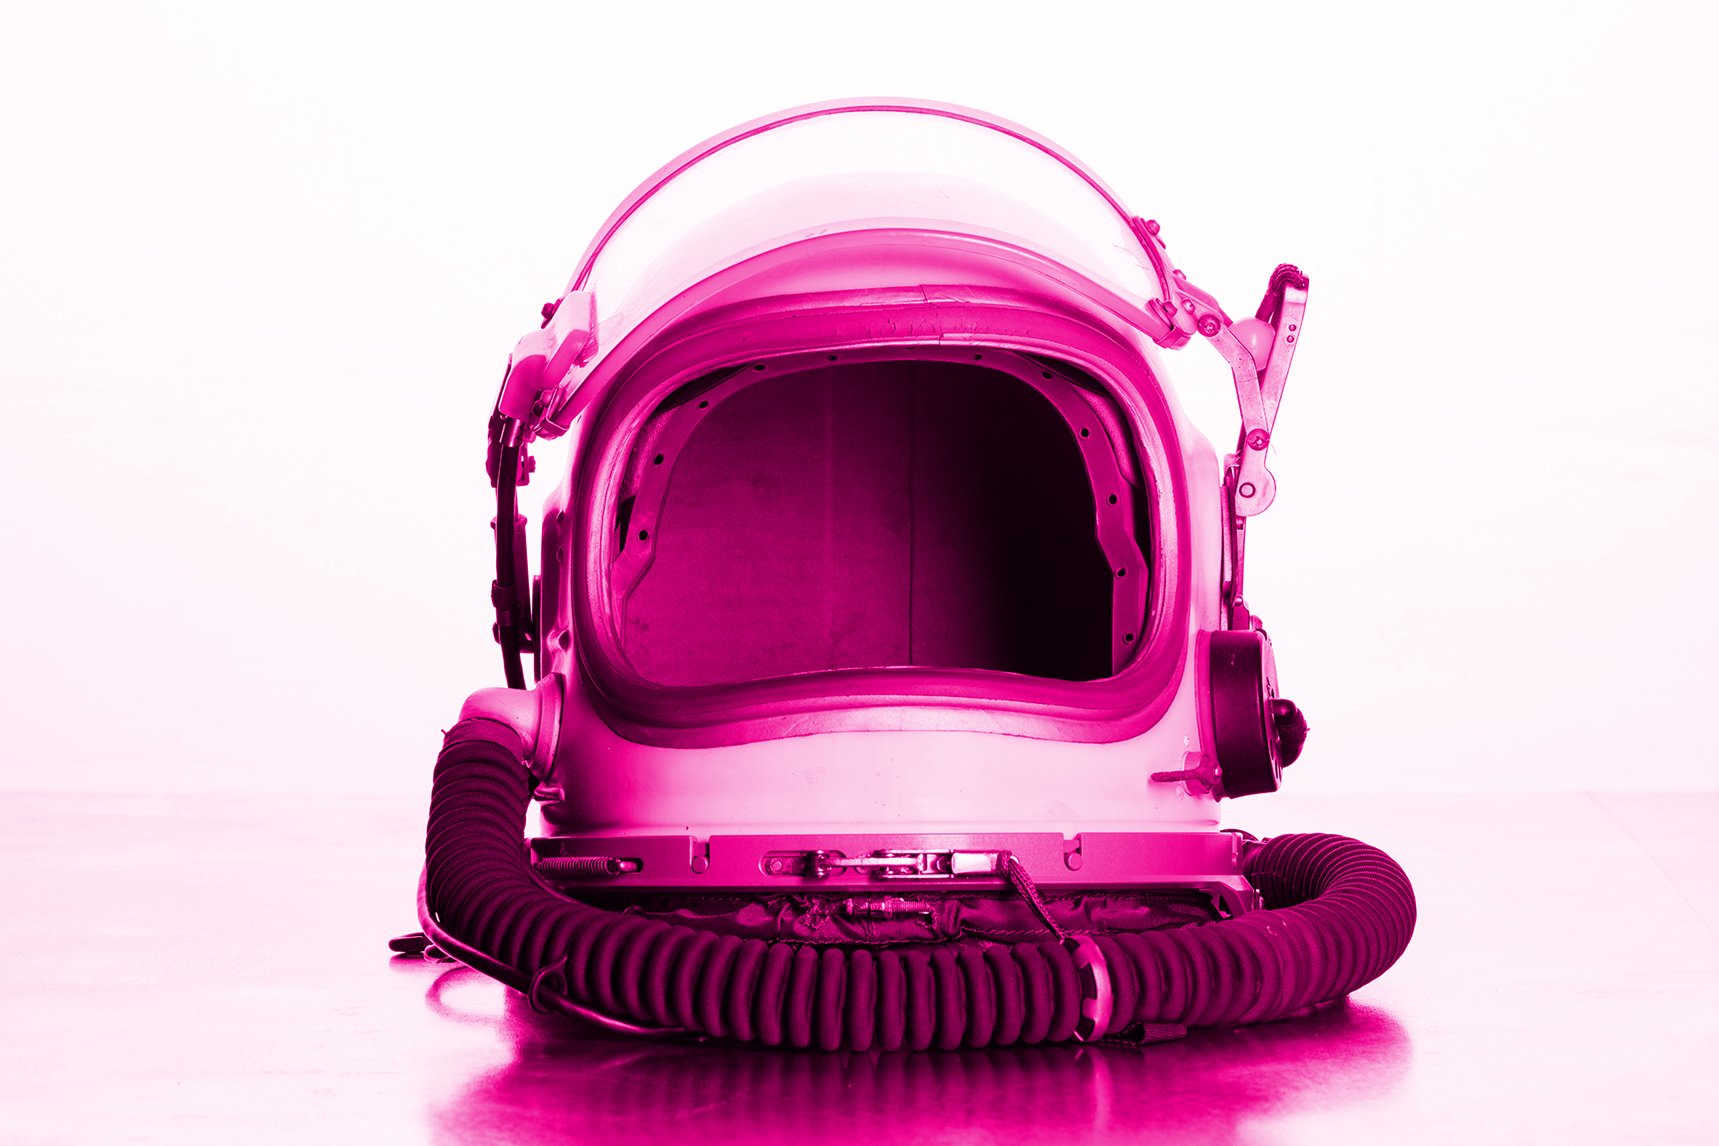 A Russian space helmet shot with hi-key lighting to represent the double bill play Complete Sex and Cosmica